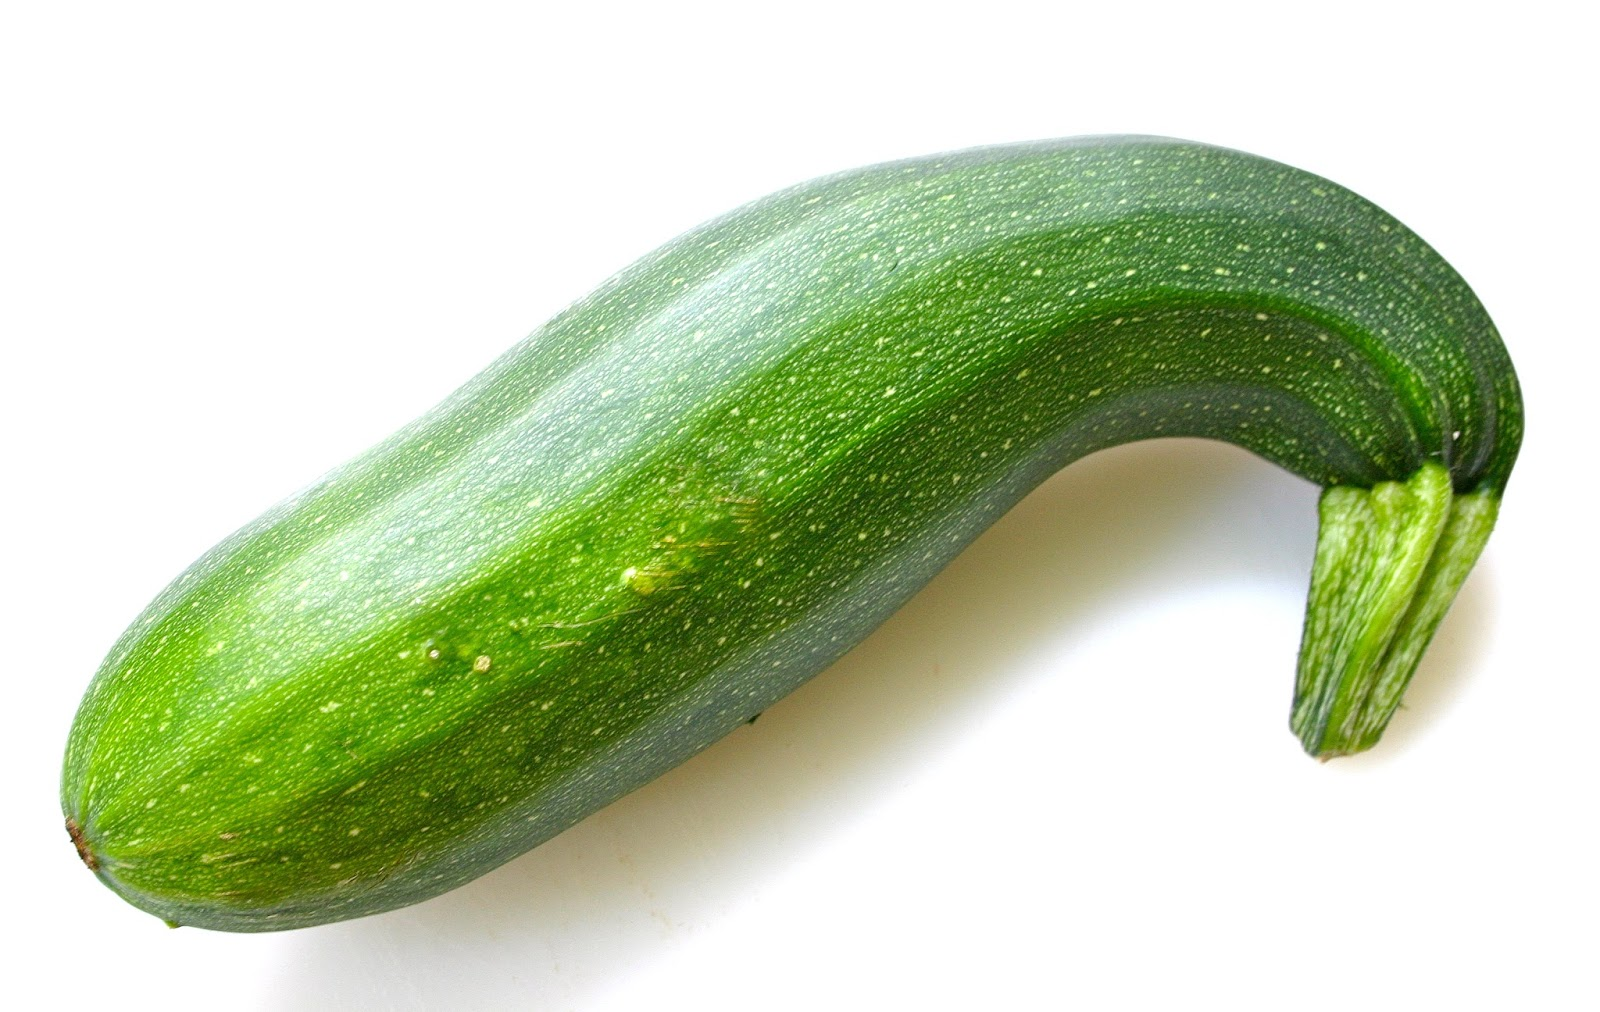 Zucchini Pics, Food Collection